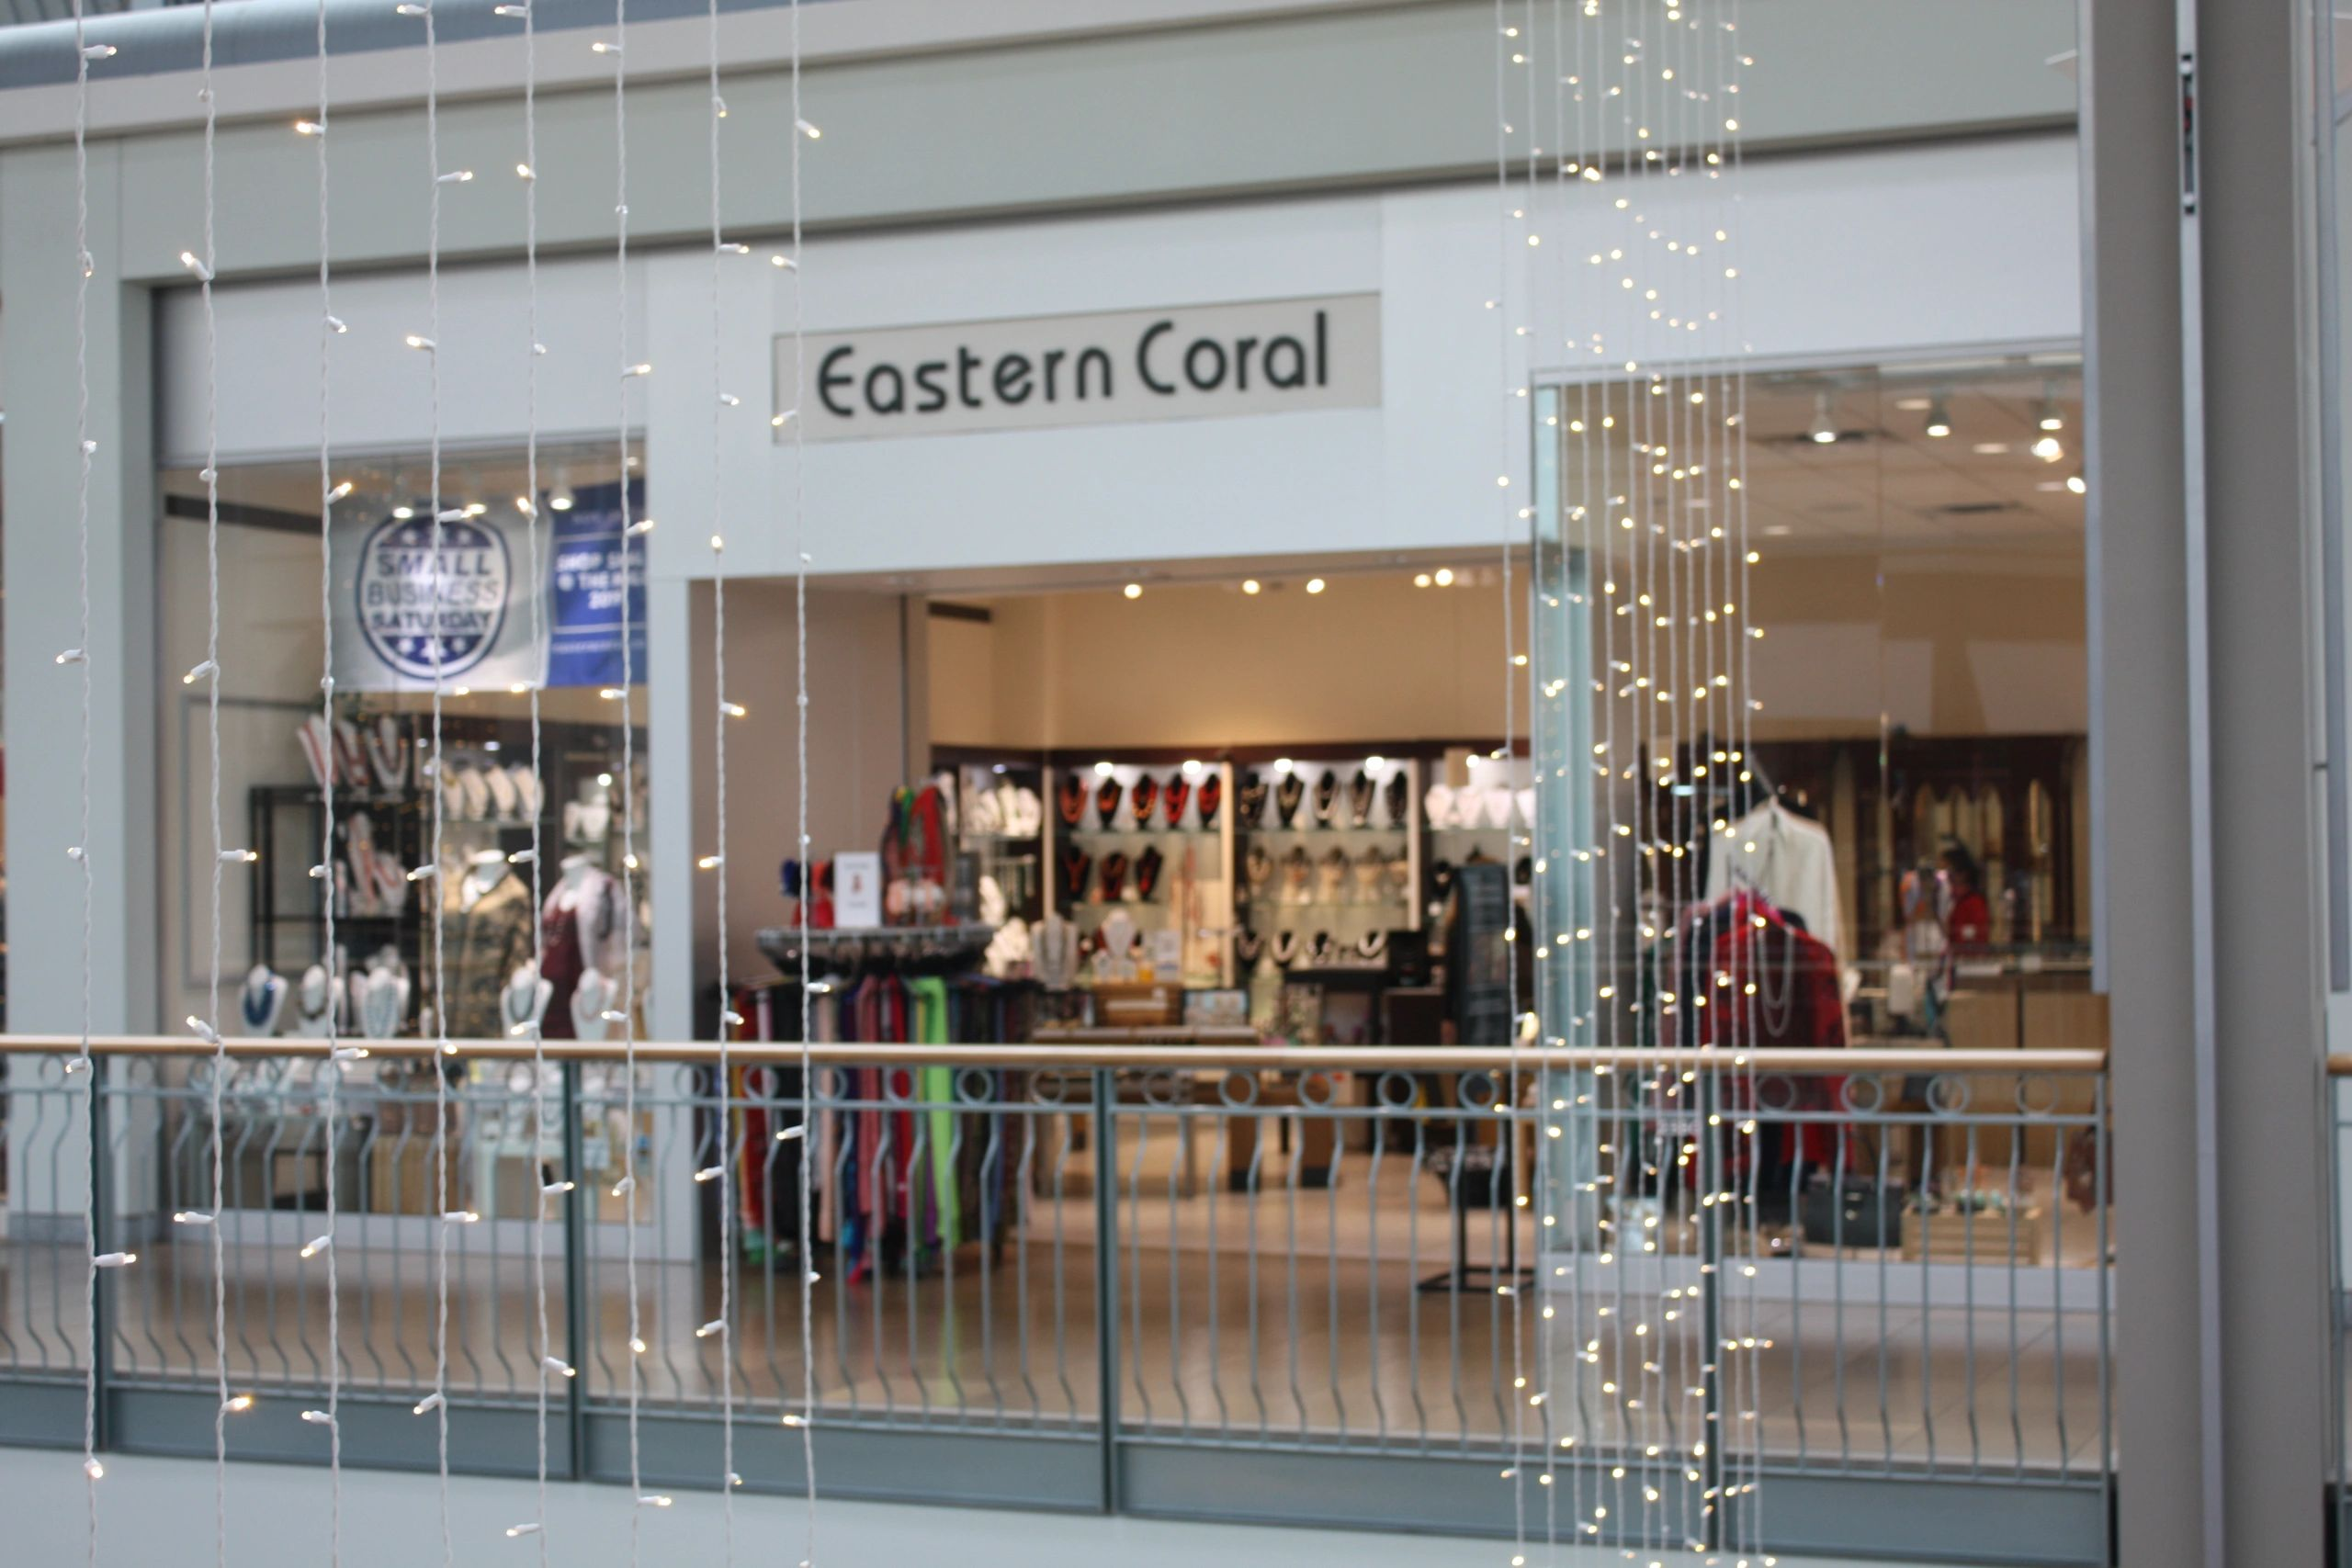 Eastern Coral Store Front in the Mall in Columbia, Columbia Maryland.